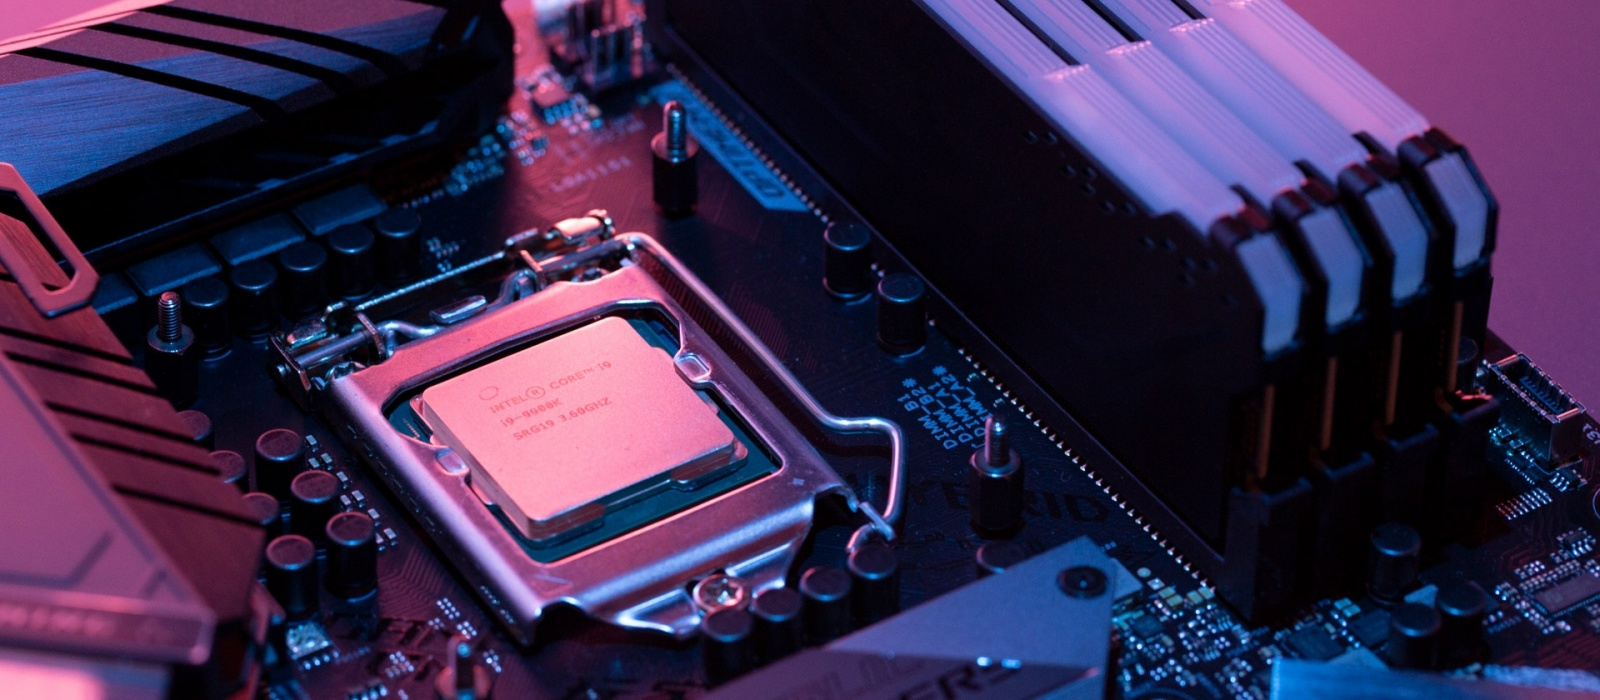 How to find out the CPU temperature in Windows 10